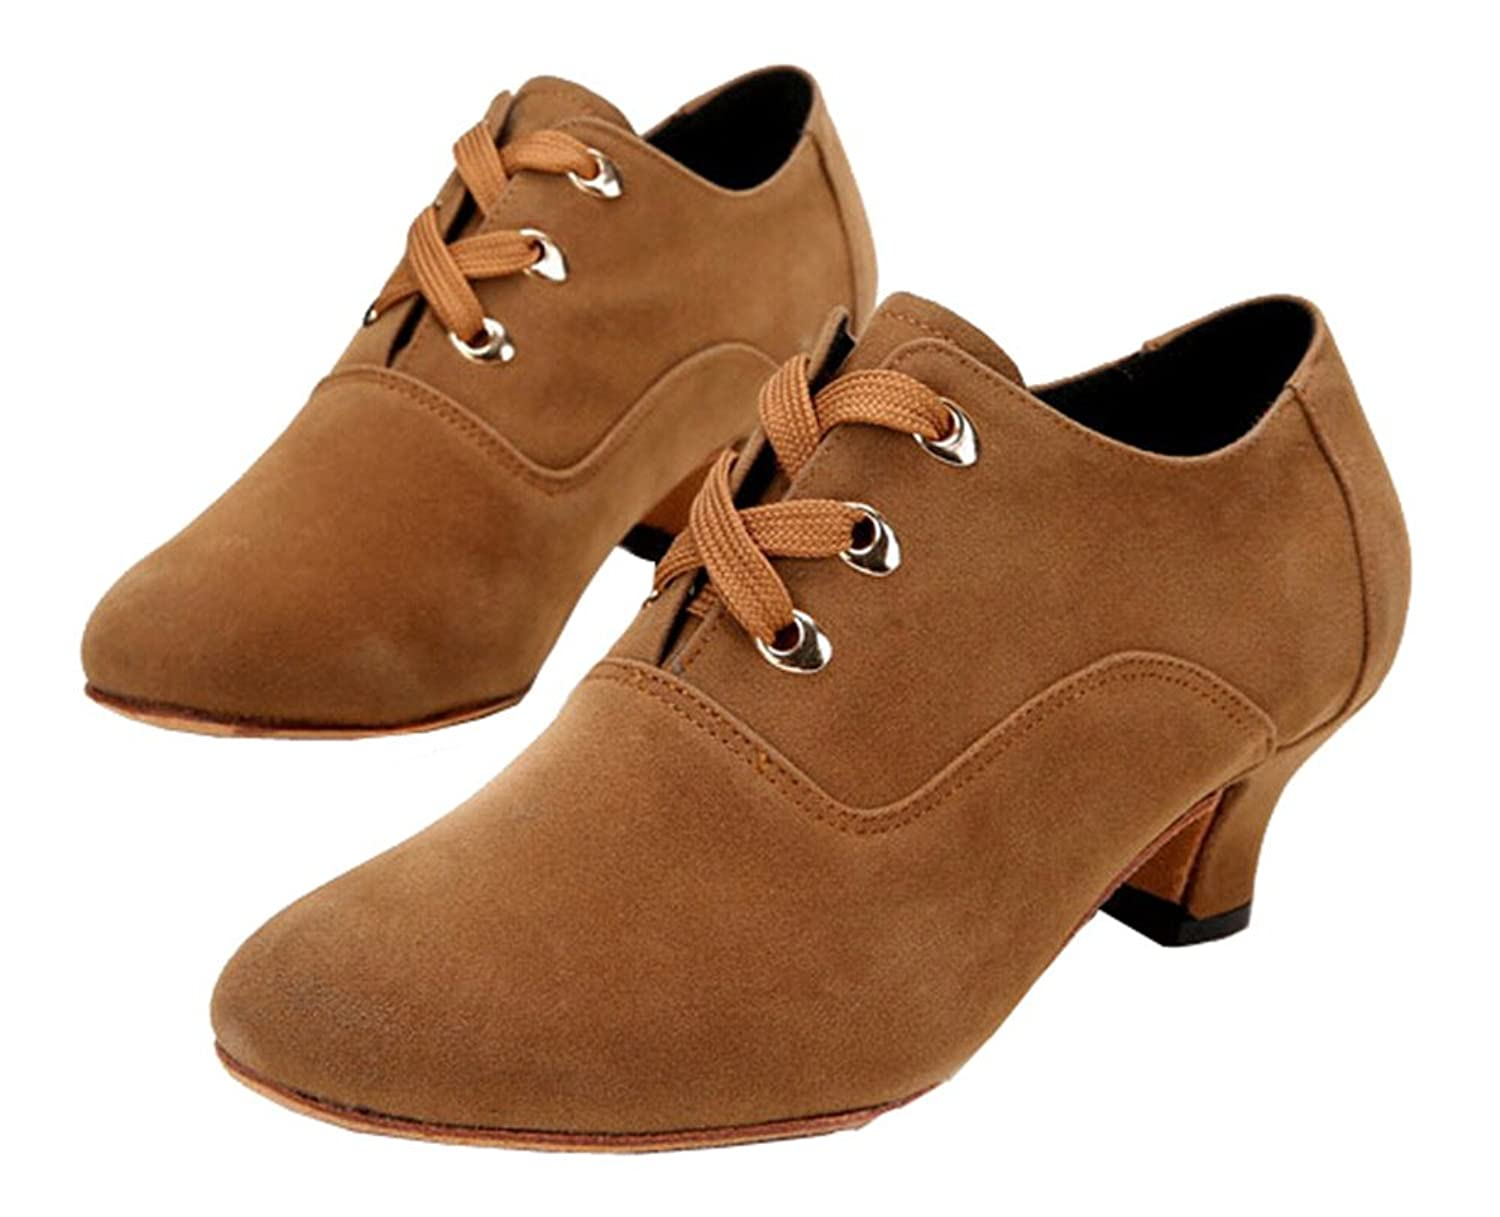 Swing Dance Shoes- Vintage, Lindy Hop, Tap, Ballroom Womens Modern Practice Social Dance Shoes Ankle Jazz Boots Lace-up $33.50 AT vintagedancer.com